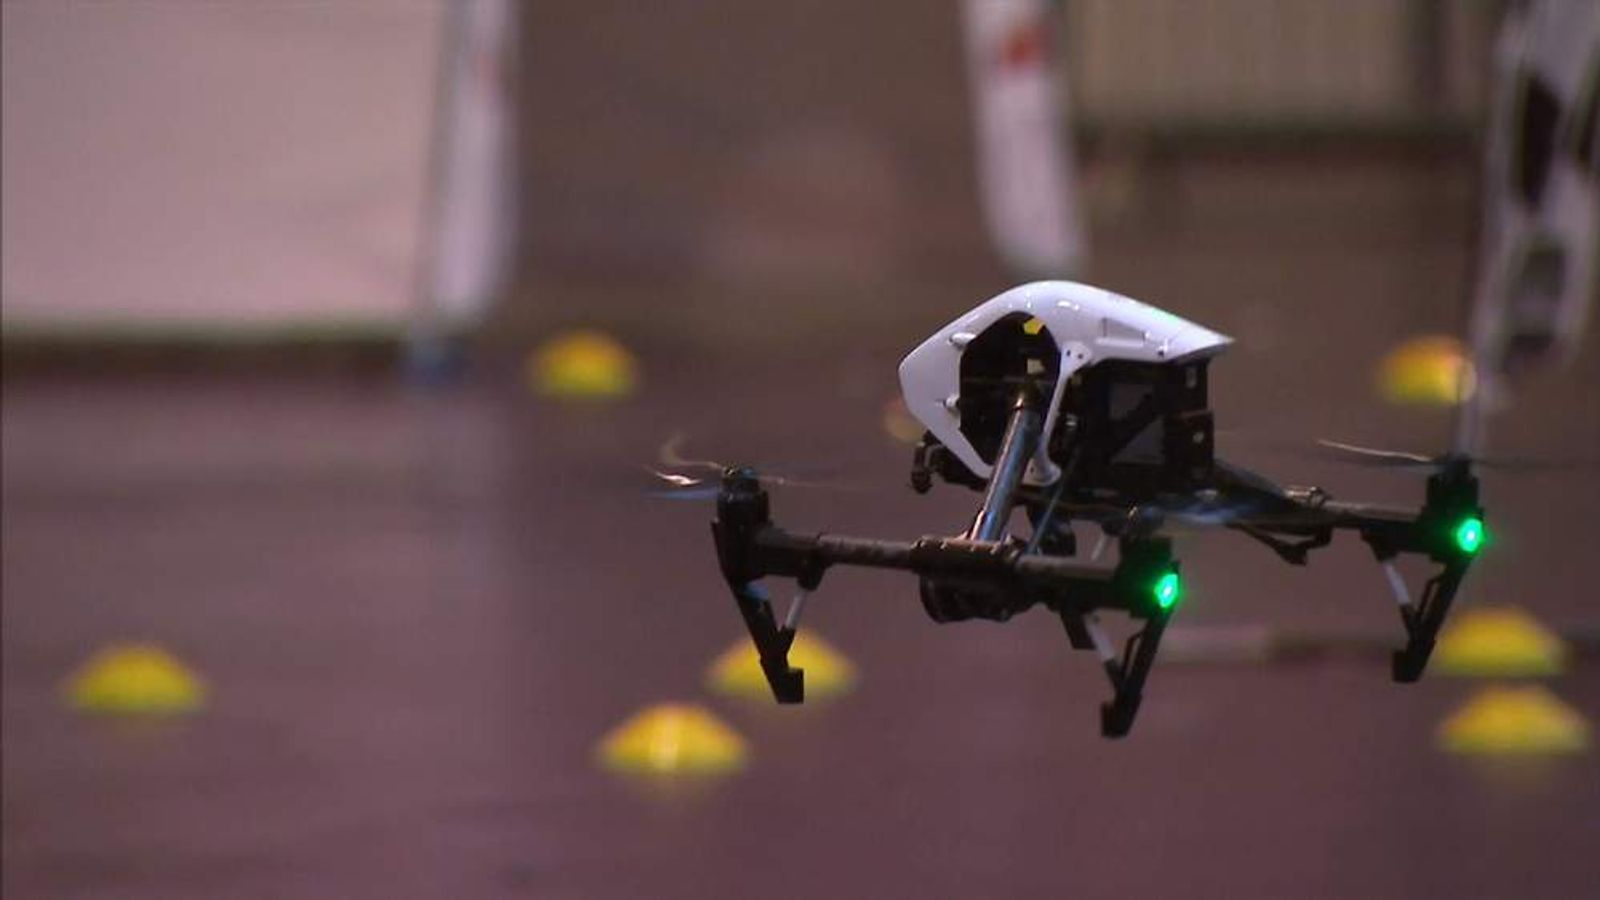 Drone complaints are on the increase, figures from police in England suggest